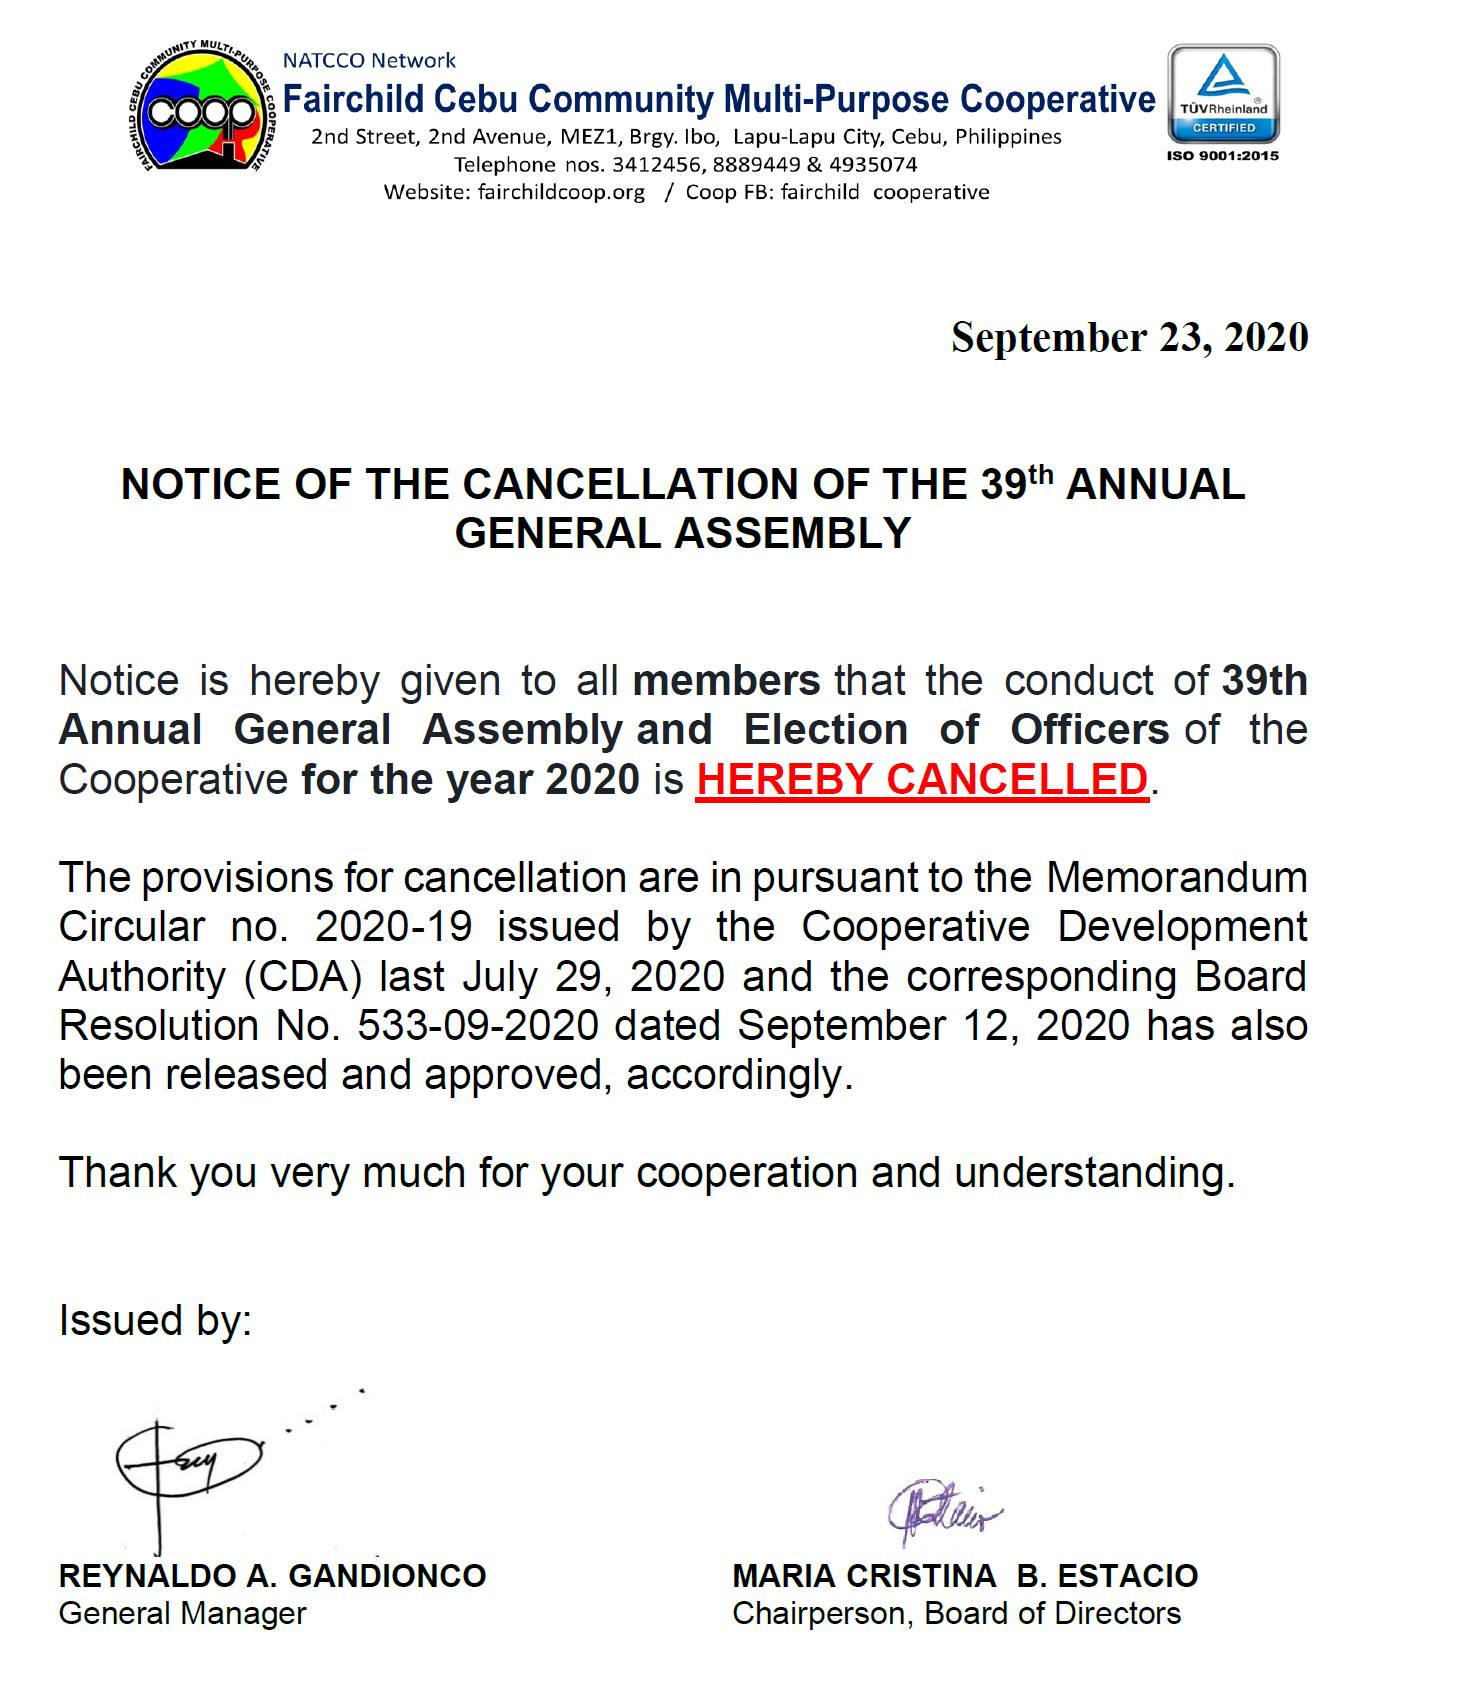 CANCELLATION OF GENERAL ASSEMBLY & ELECTION OF OFFICERS FOR YEAR 2020